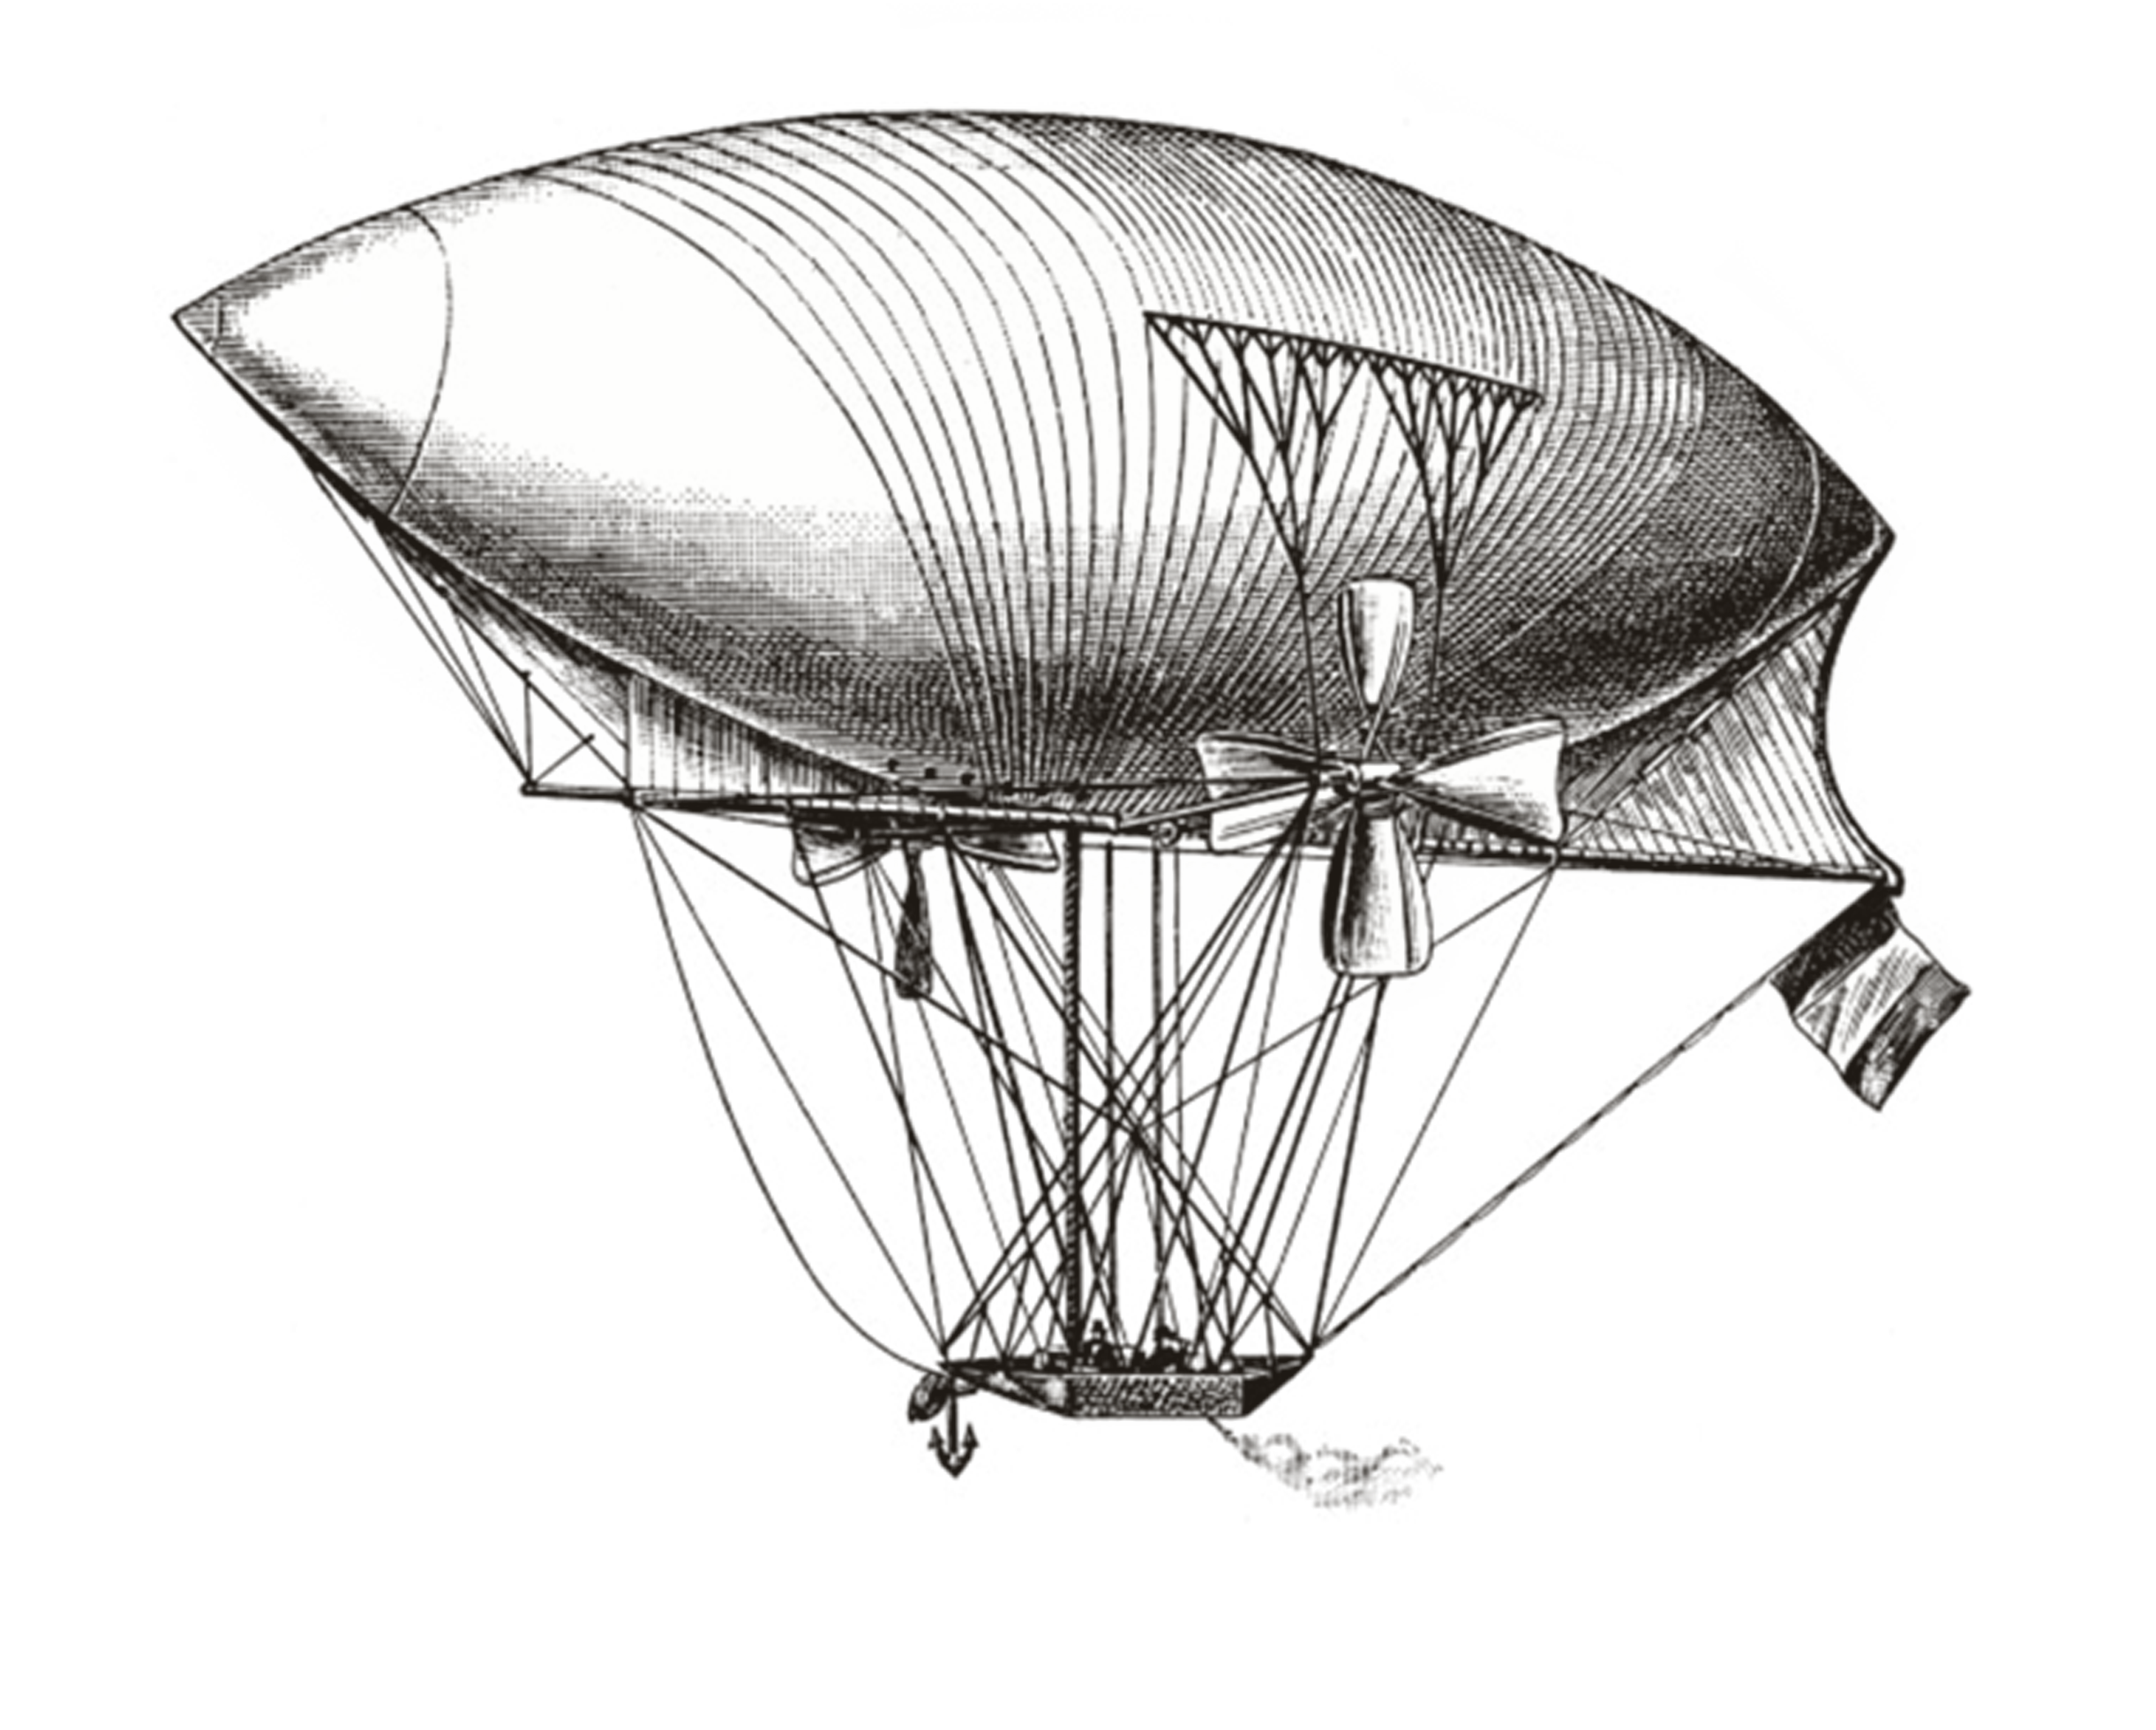 Airship drawing realistic. Principled chiropractic victory dr